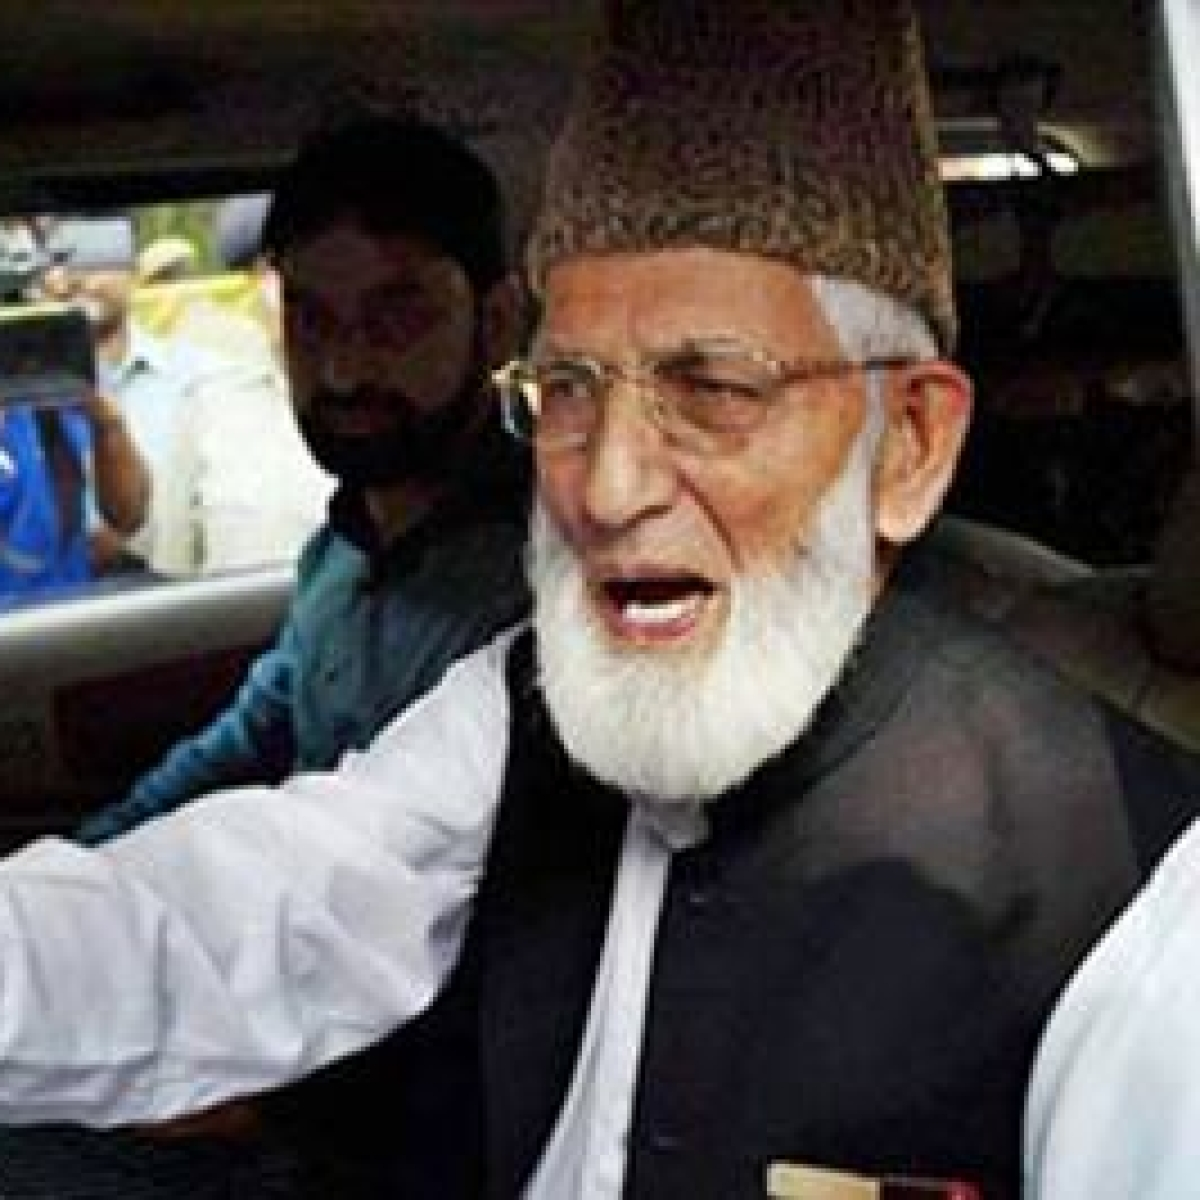 'It's working': BJP leaders hail Article 370 abrogation as Geelani announces 'dissociation' from Hurriyat